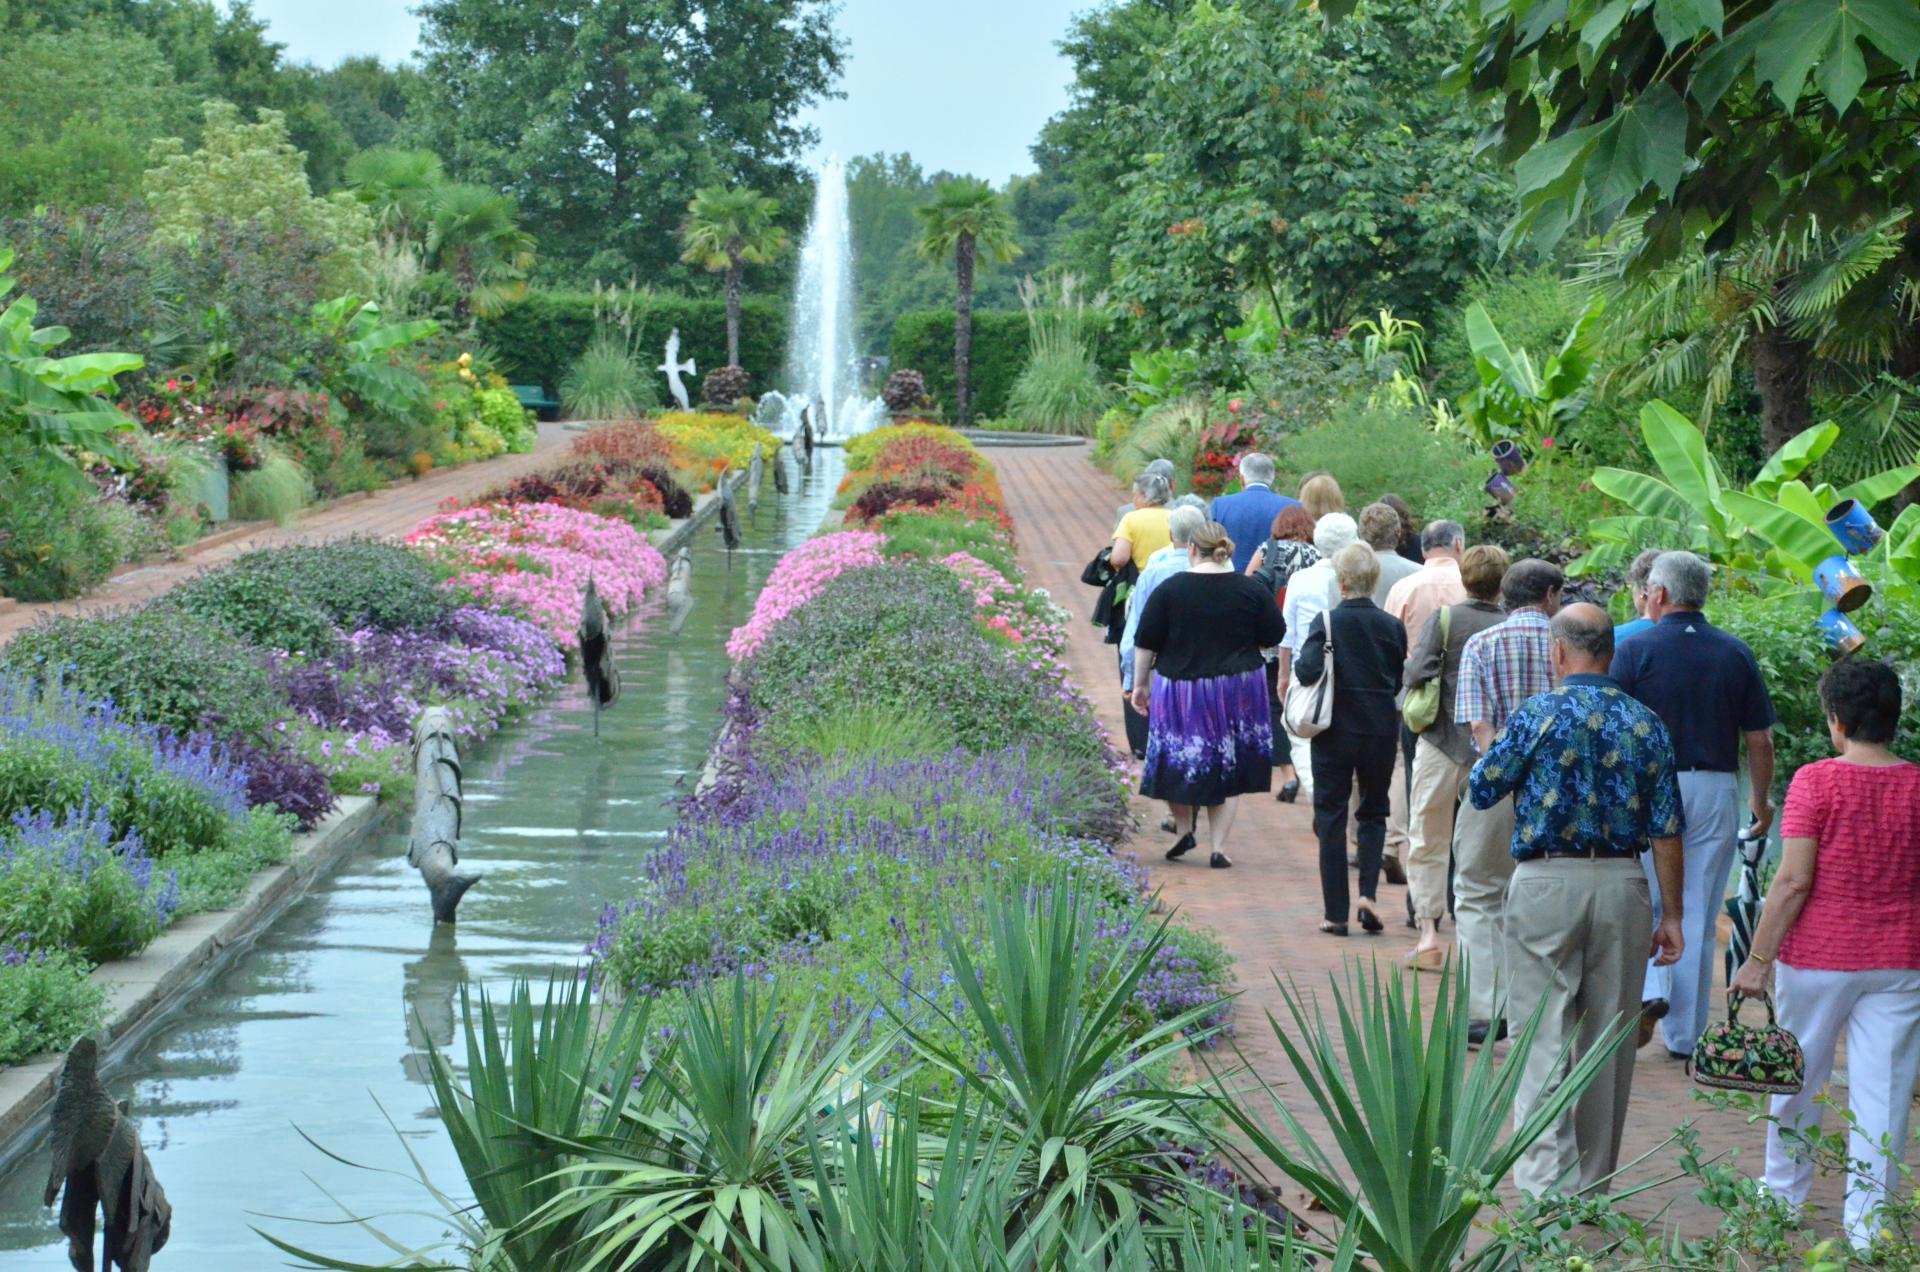 Acquiring Botanical Garden Status | American Public Gardens Association